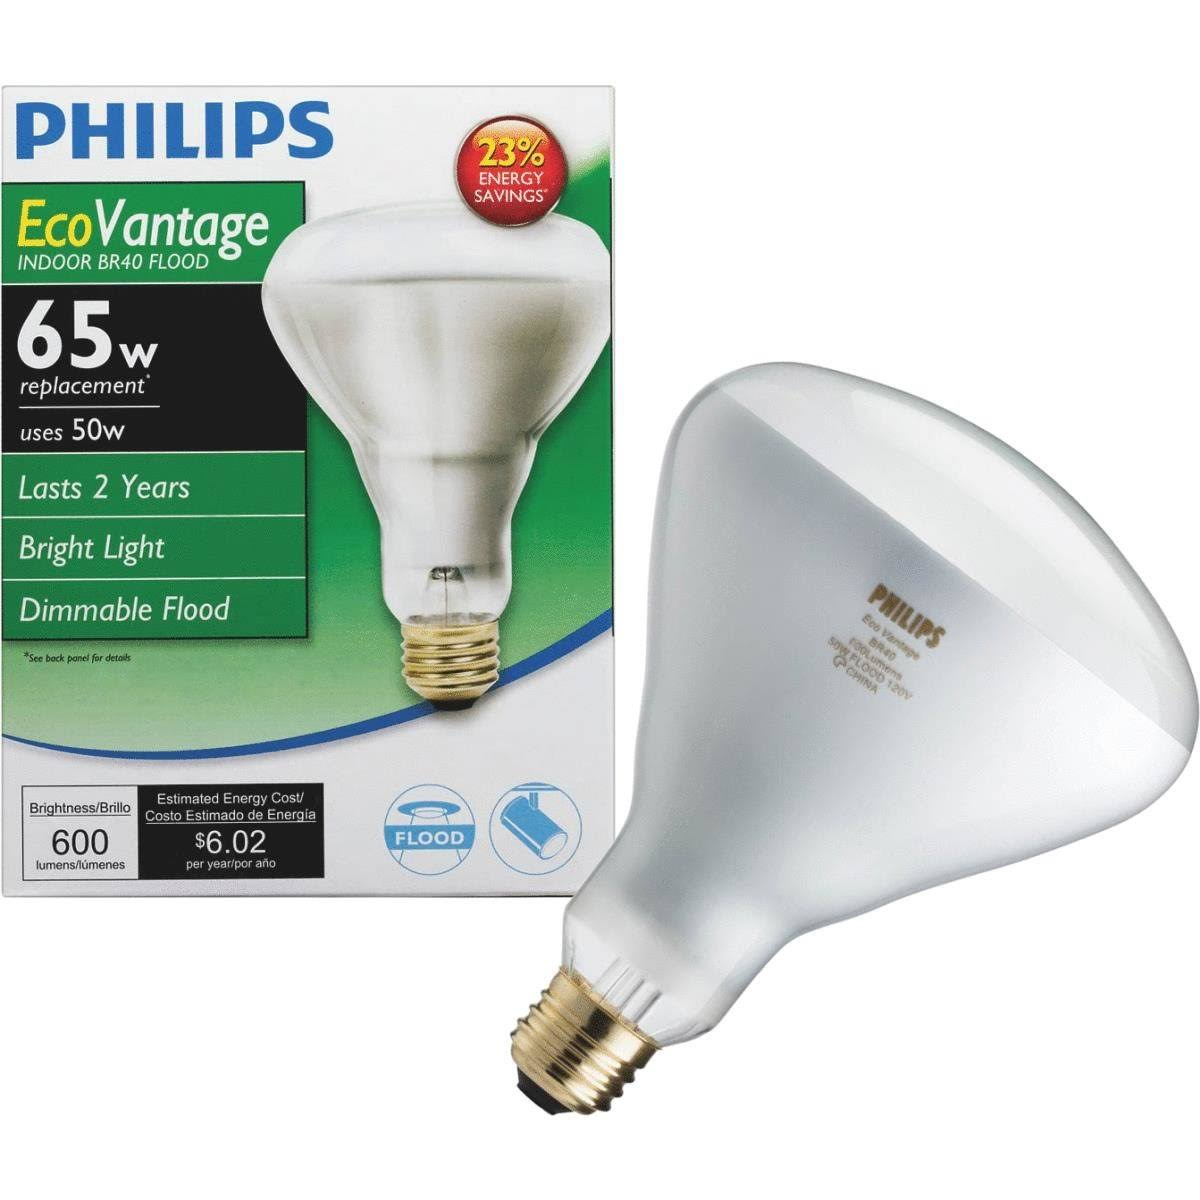 Philips EcoVantage Halogen BR40 Flood Light Bulb - 65W Equivalent